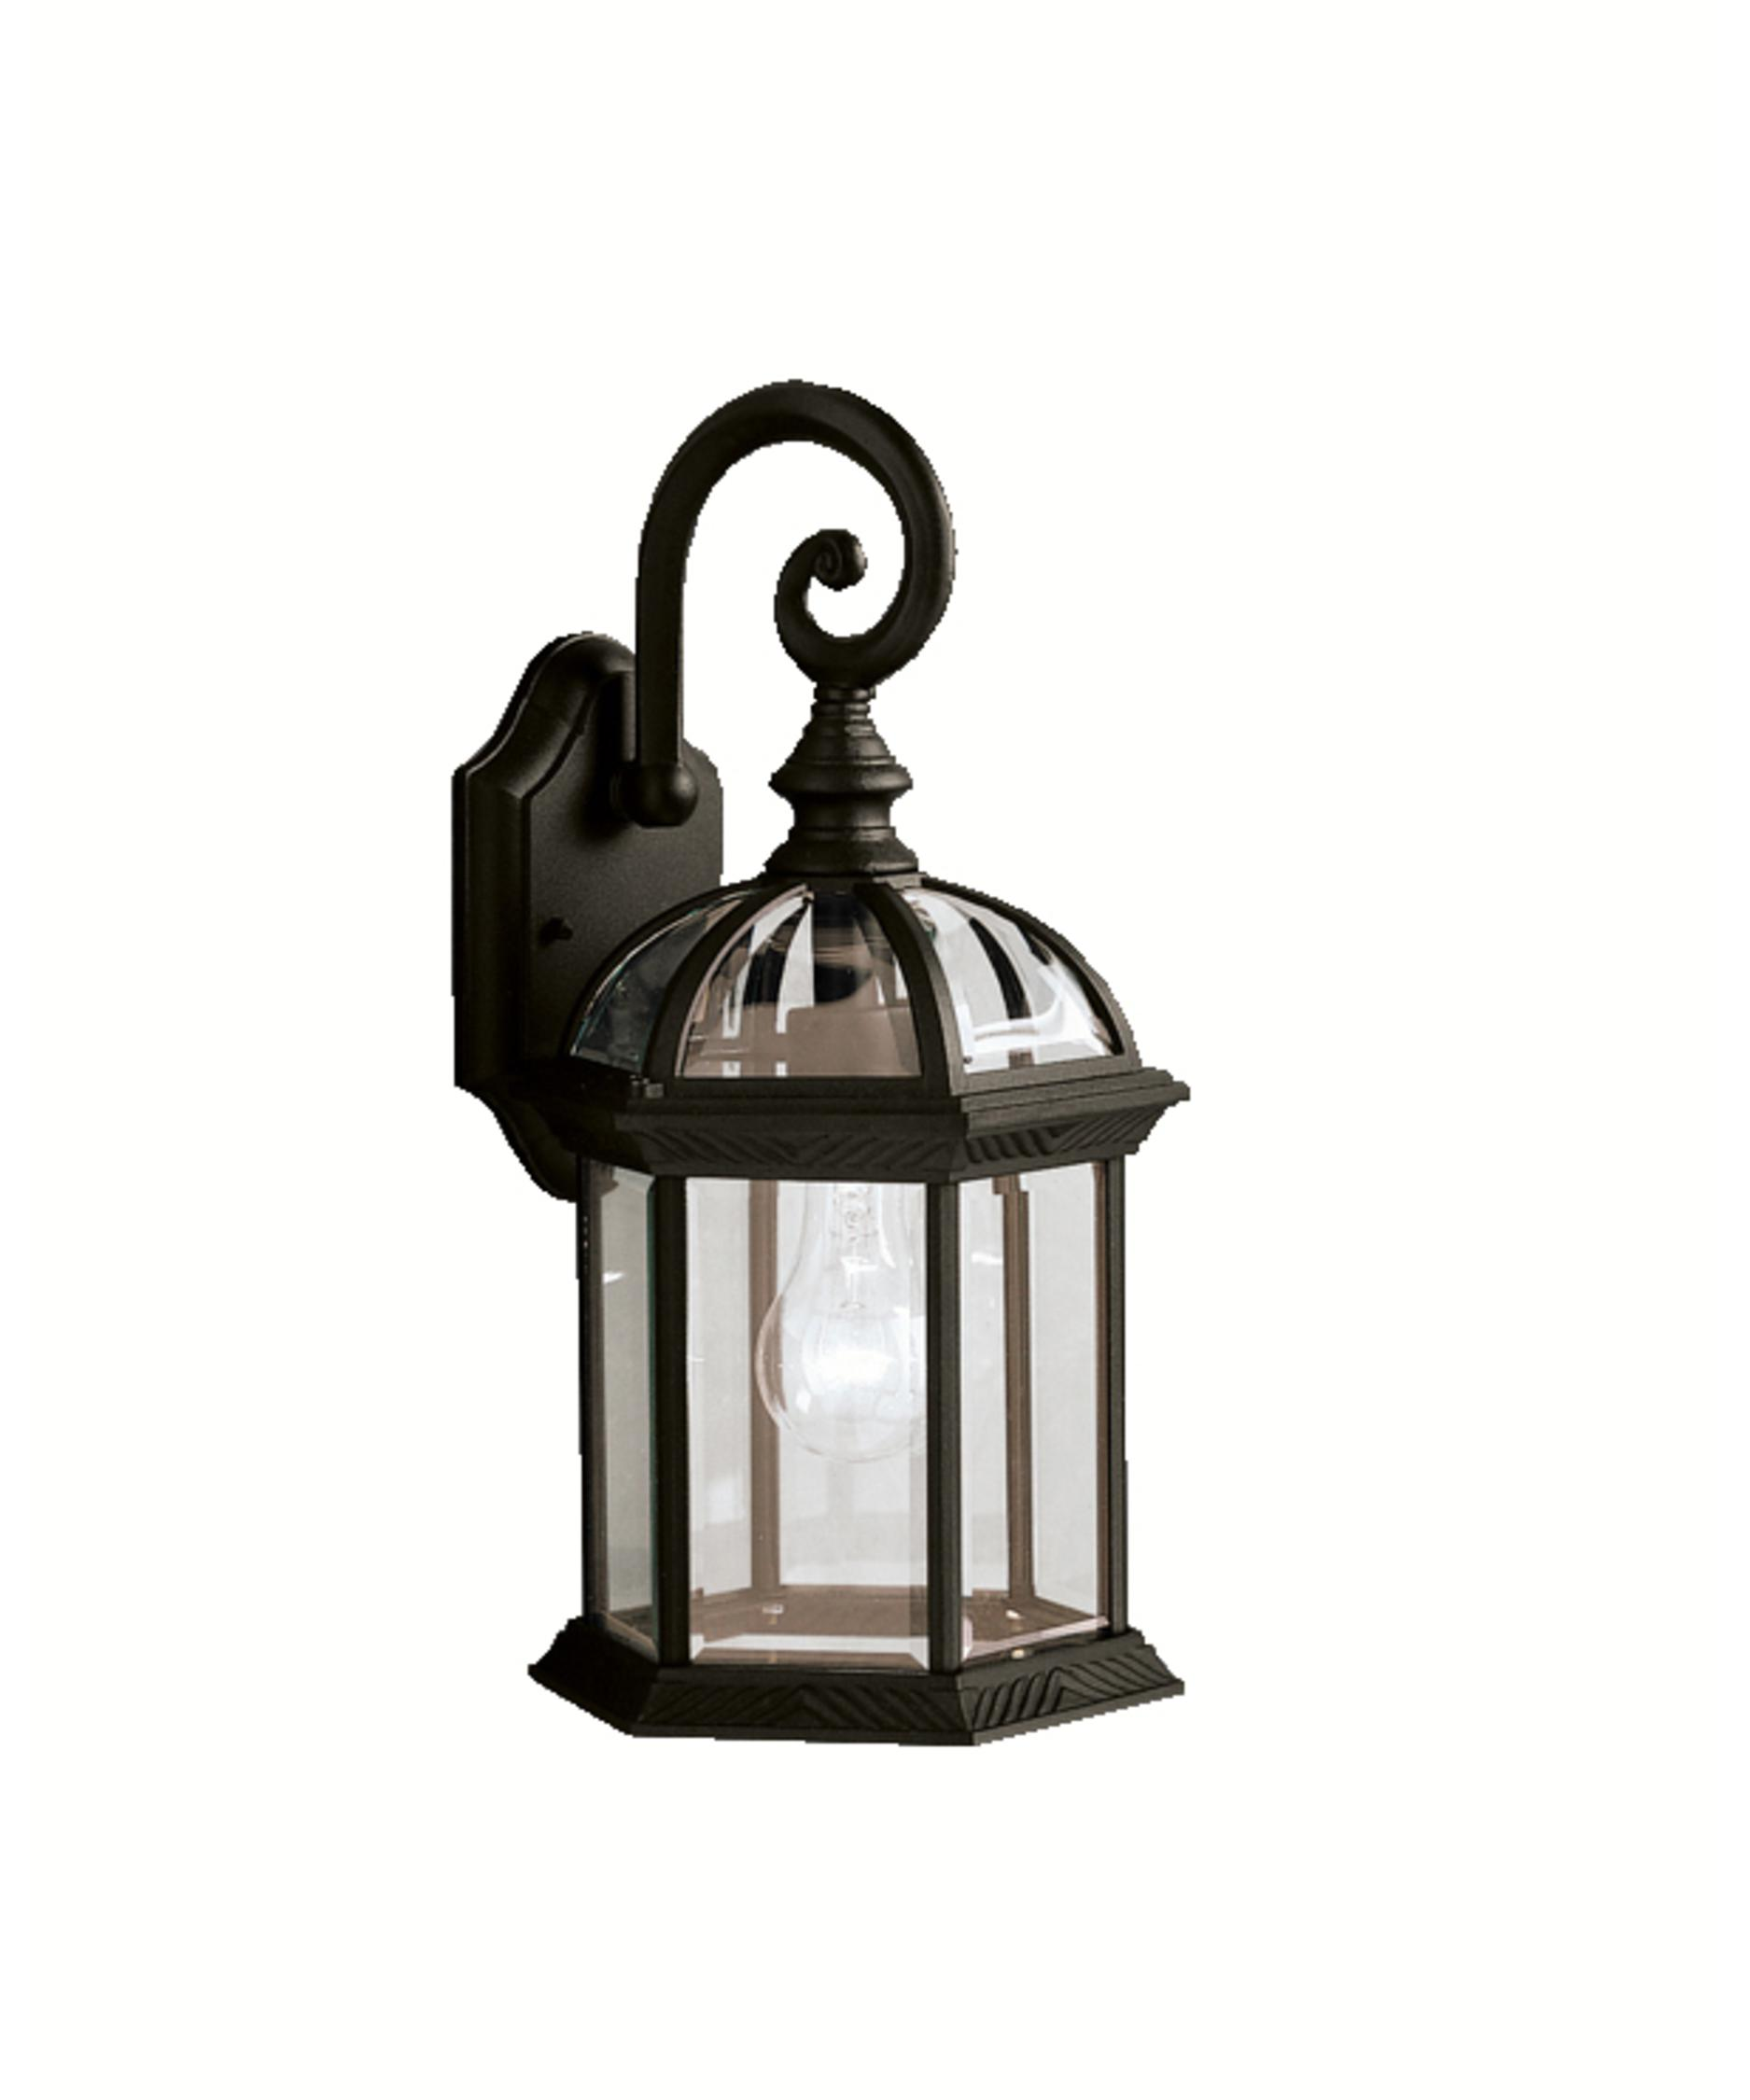 Kichler New Street Series 08 Outdoor 1 Light Outdoor Wall Light Capitol Lighting 1-800lighting.com